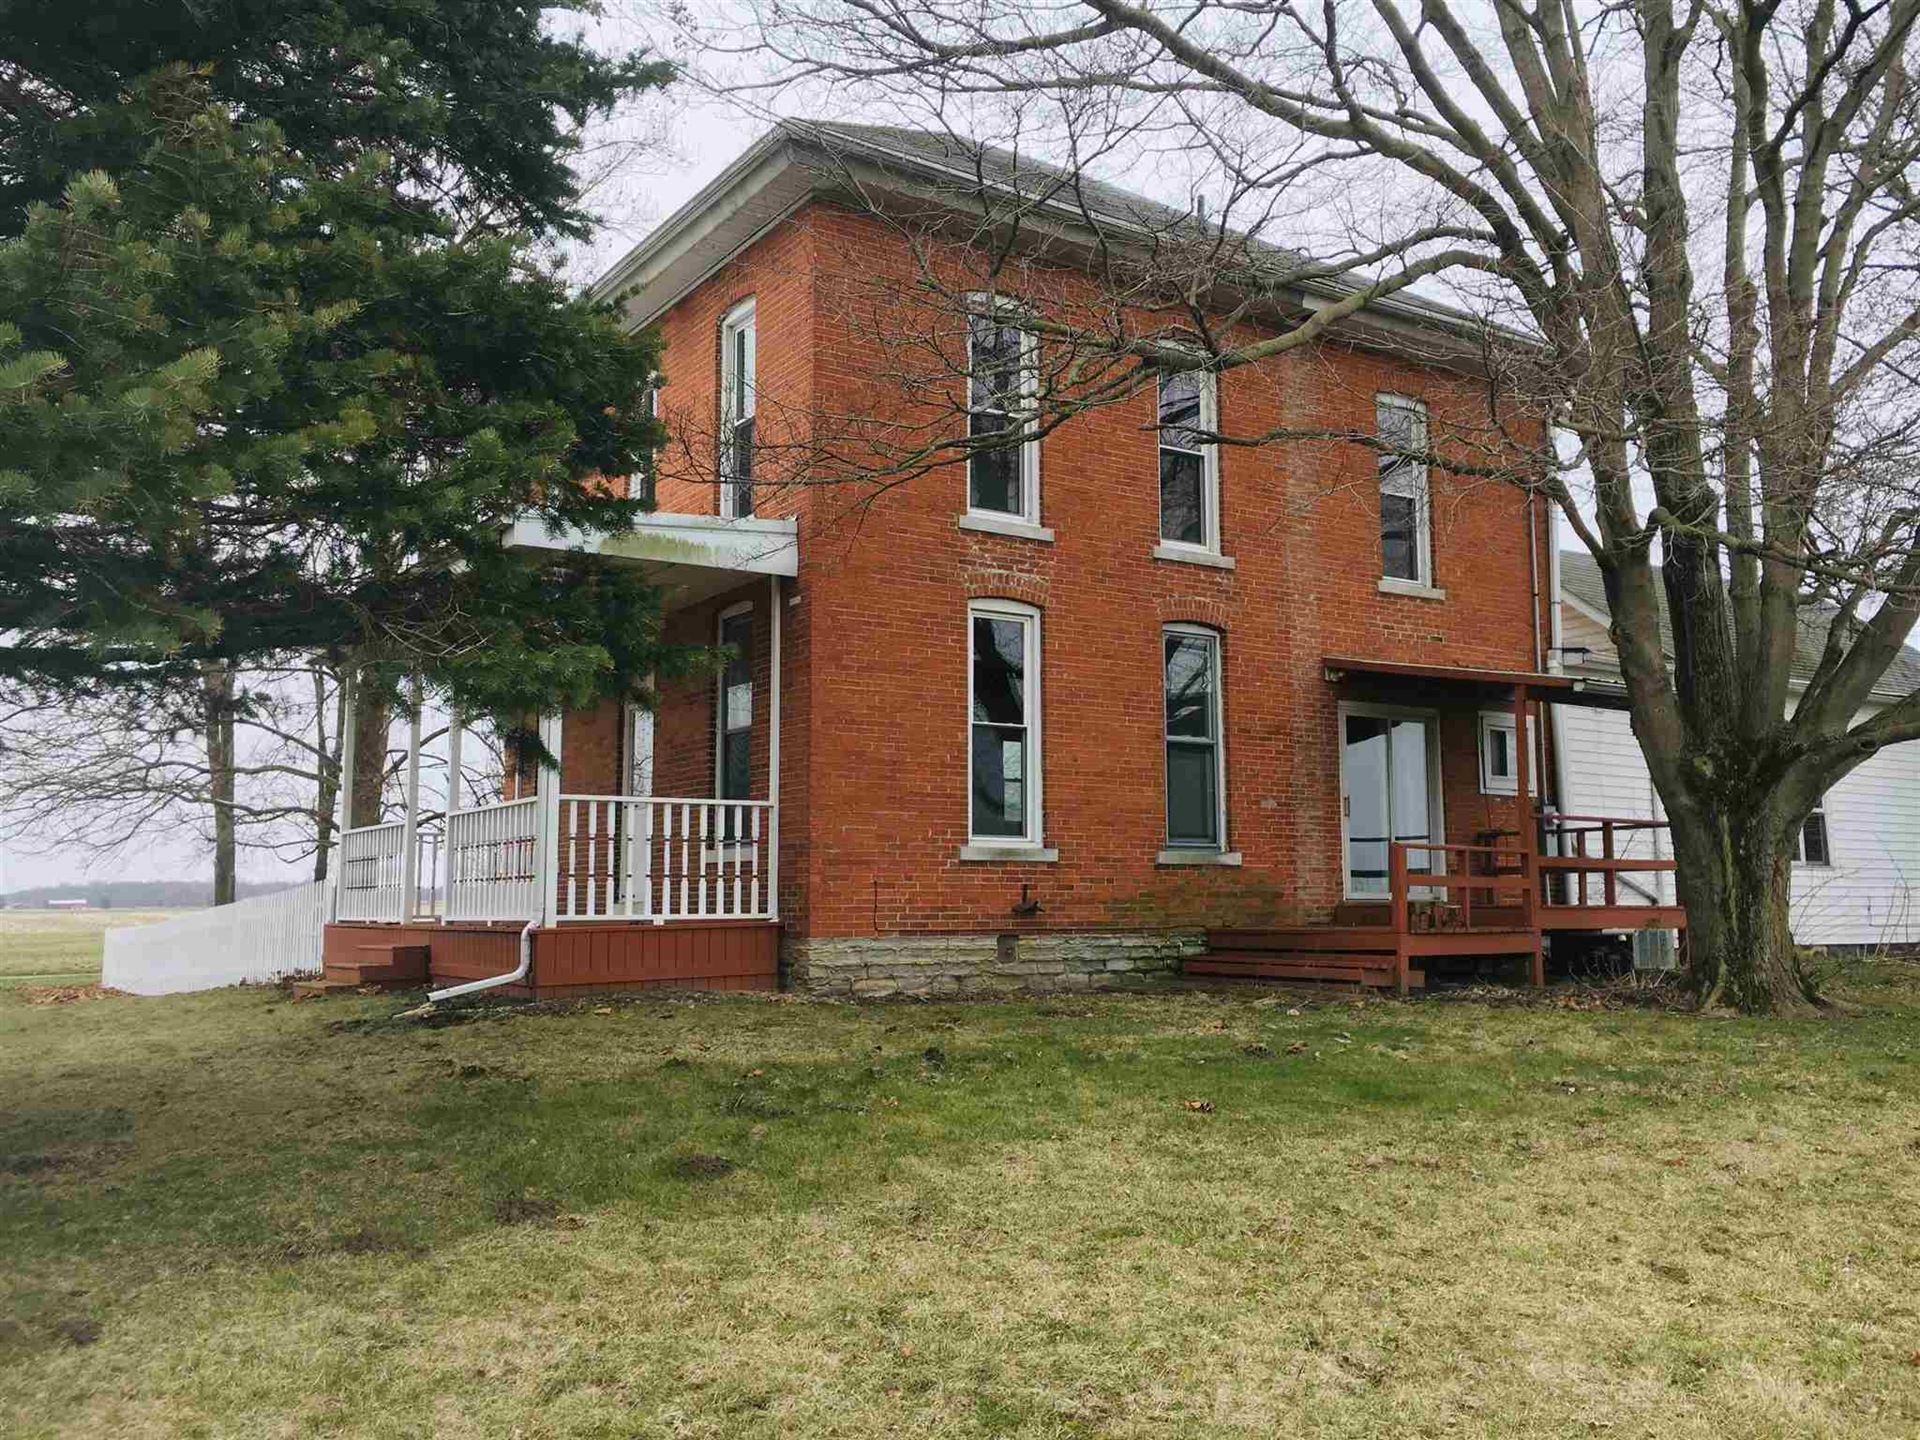 Photo of 4229 E 1200 N., North Manchester, IN 46962 (MLS # 202010708)